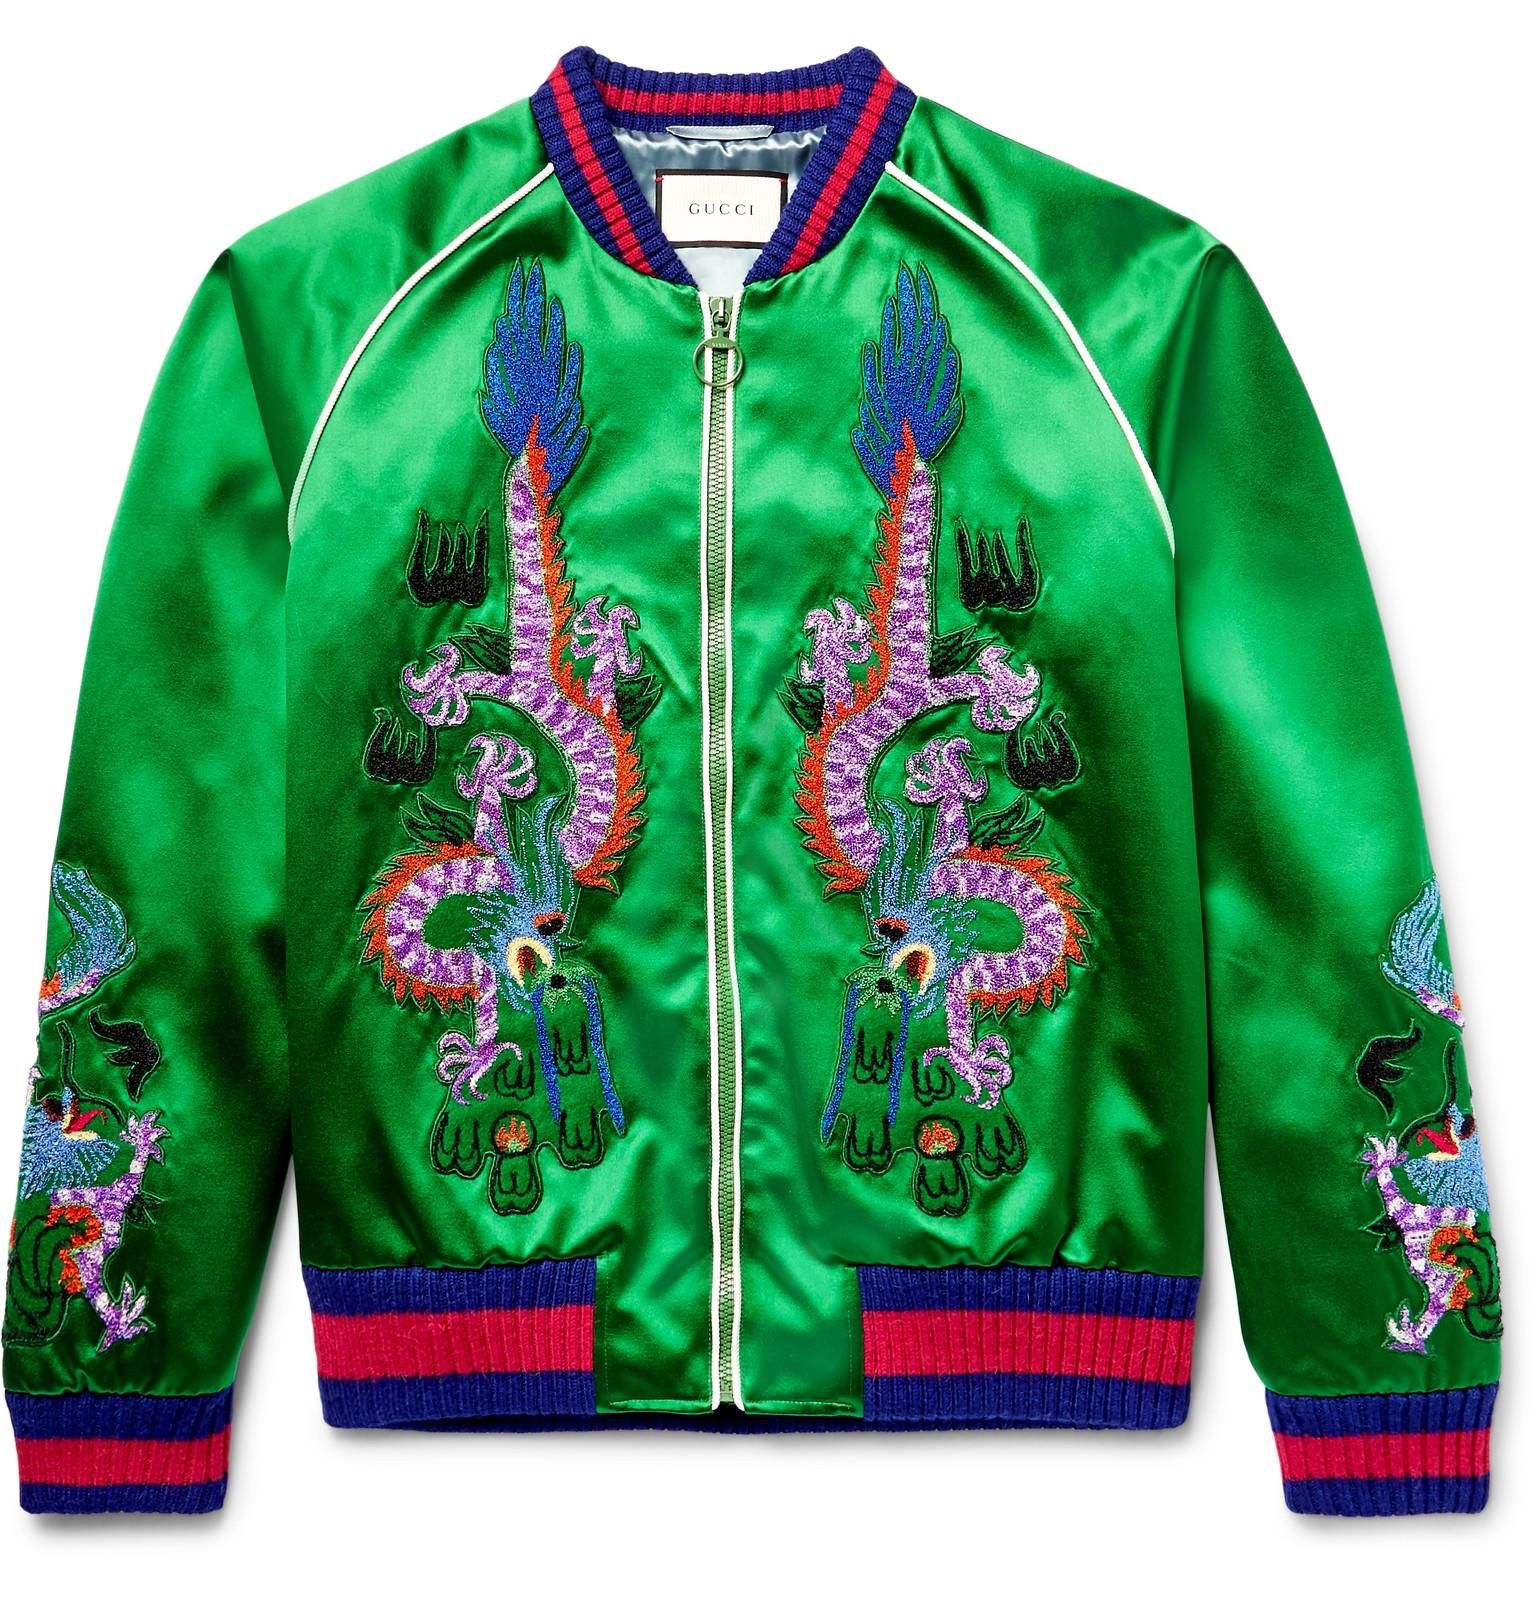 cc5b37e314cdfd gucci bomber jackets with dragons | Gucci Appliquéd Silk-satin Bomber  Jacket in Green for Men | Lyst